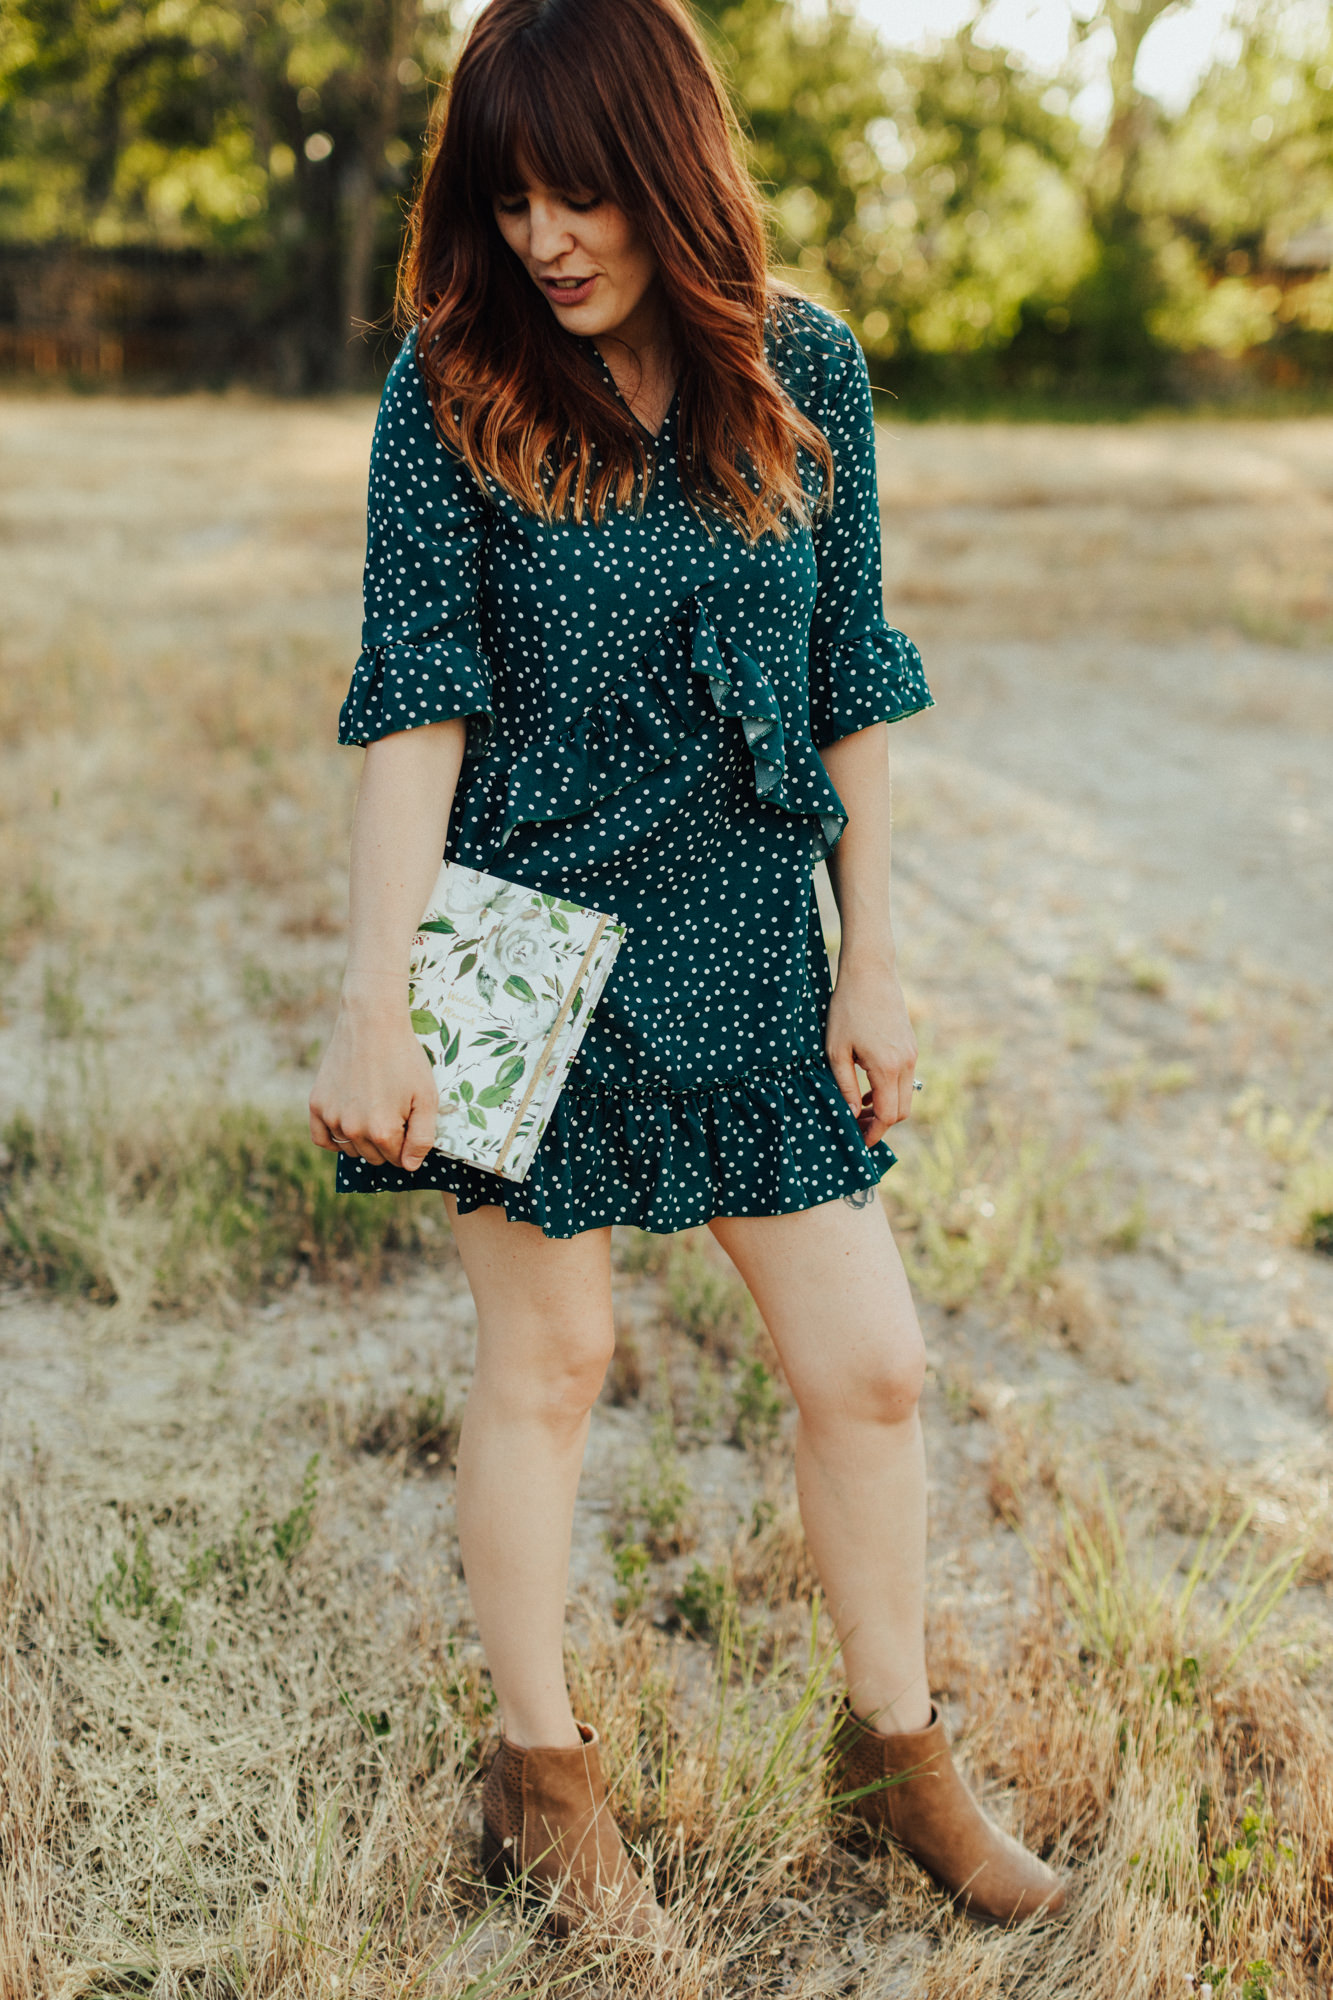 Woman in blue polka dot dress standing in a sunny field holding a wedding planner